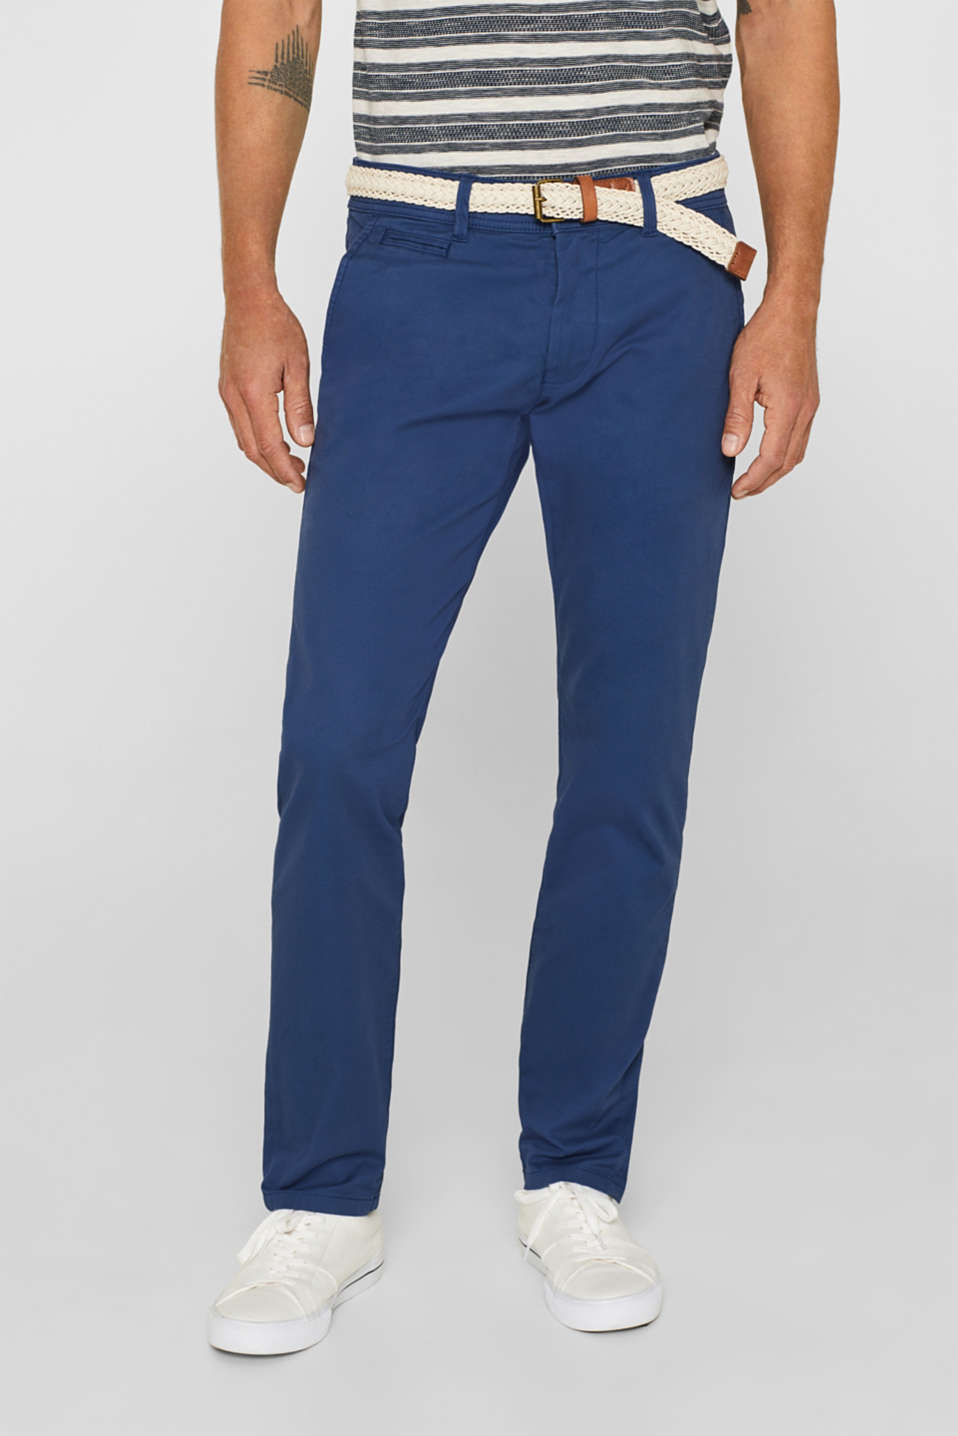 Esprit Stretch cotton chinos with a belt at our Online Shop